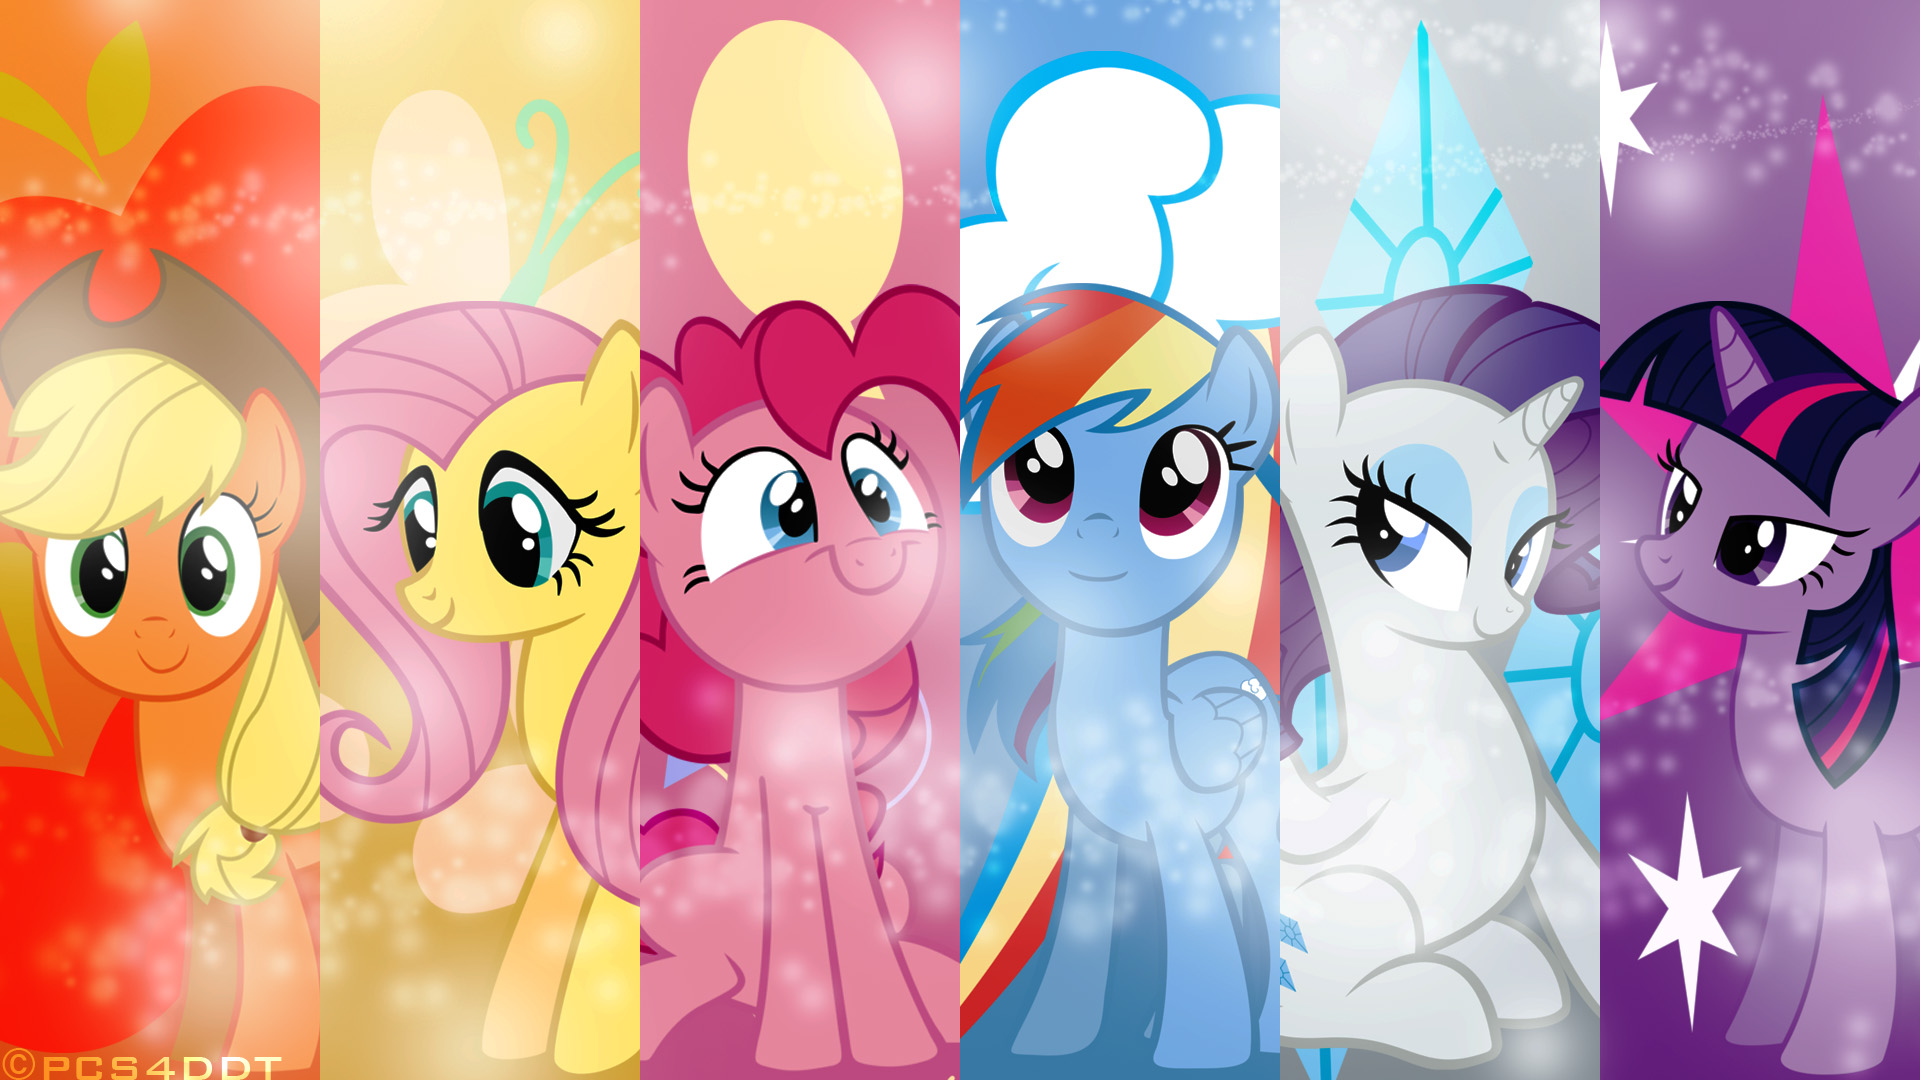 Briley Nail - my little pony wallpaper to download - 1920 x 1080 ...